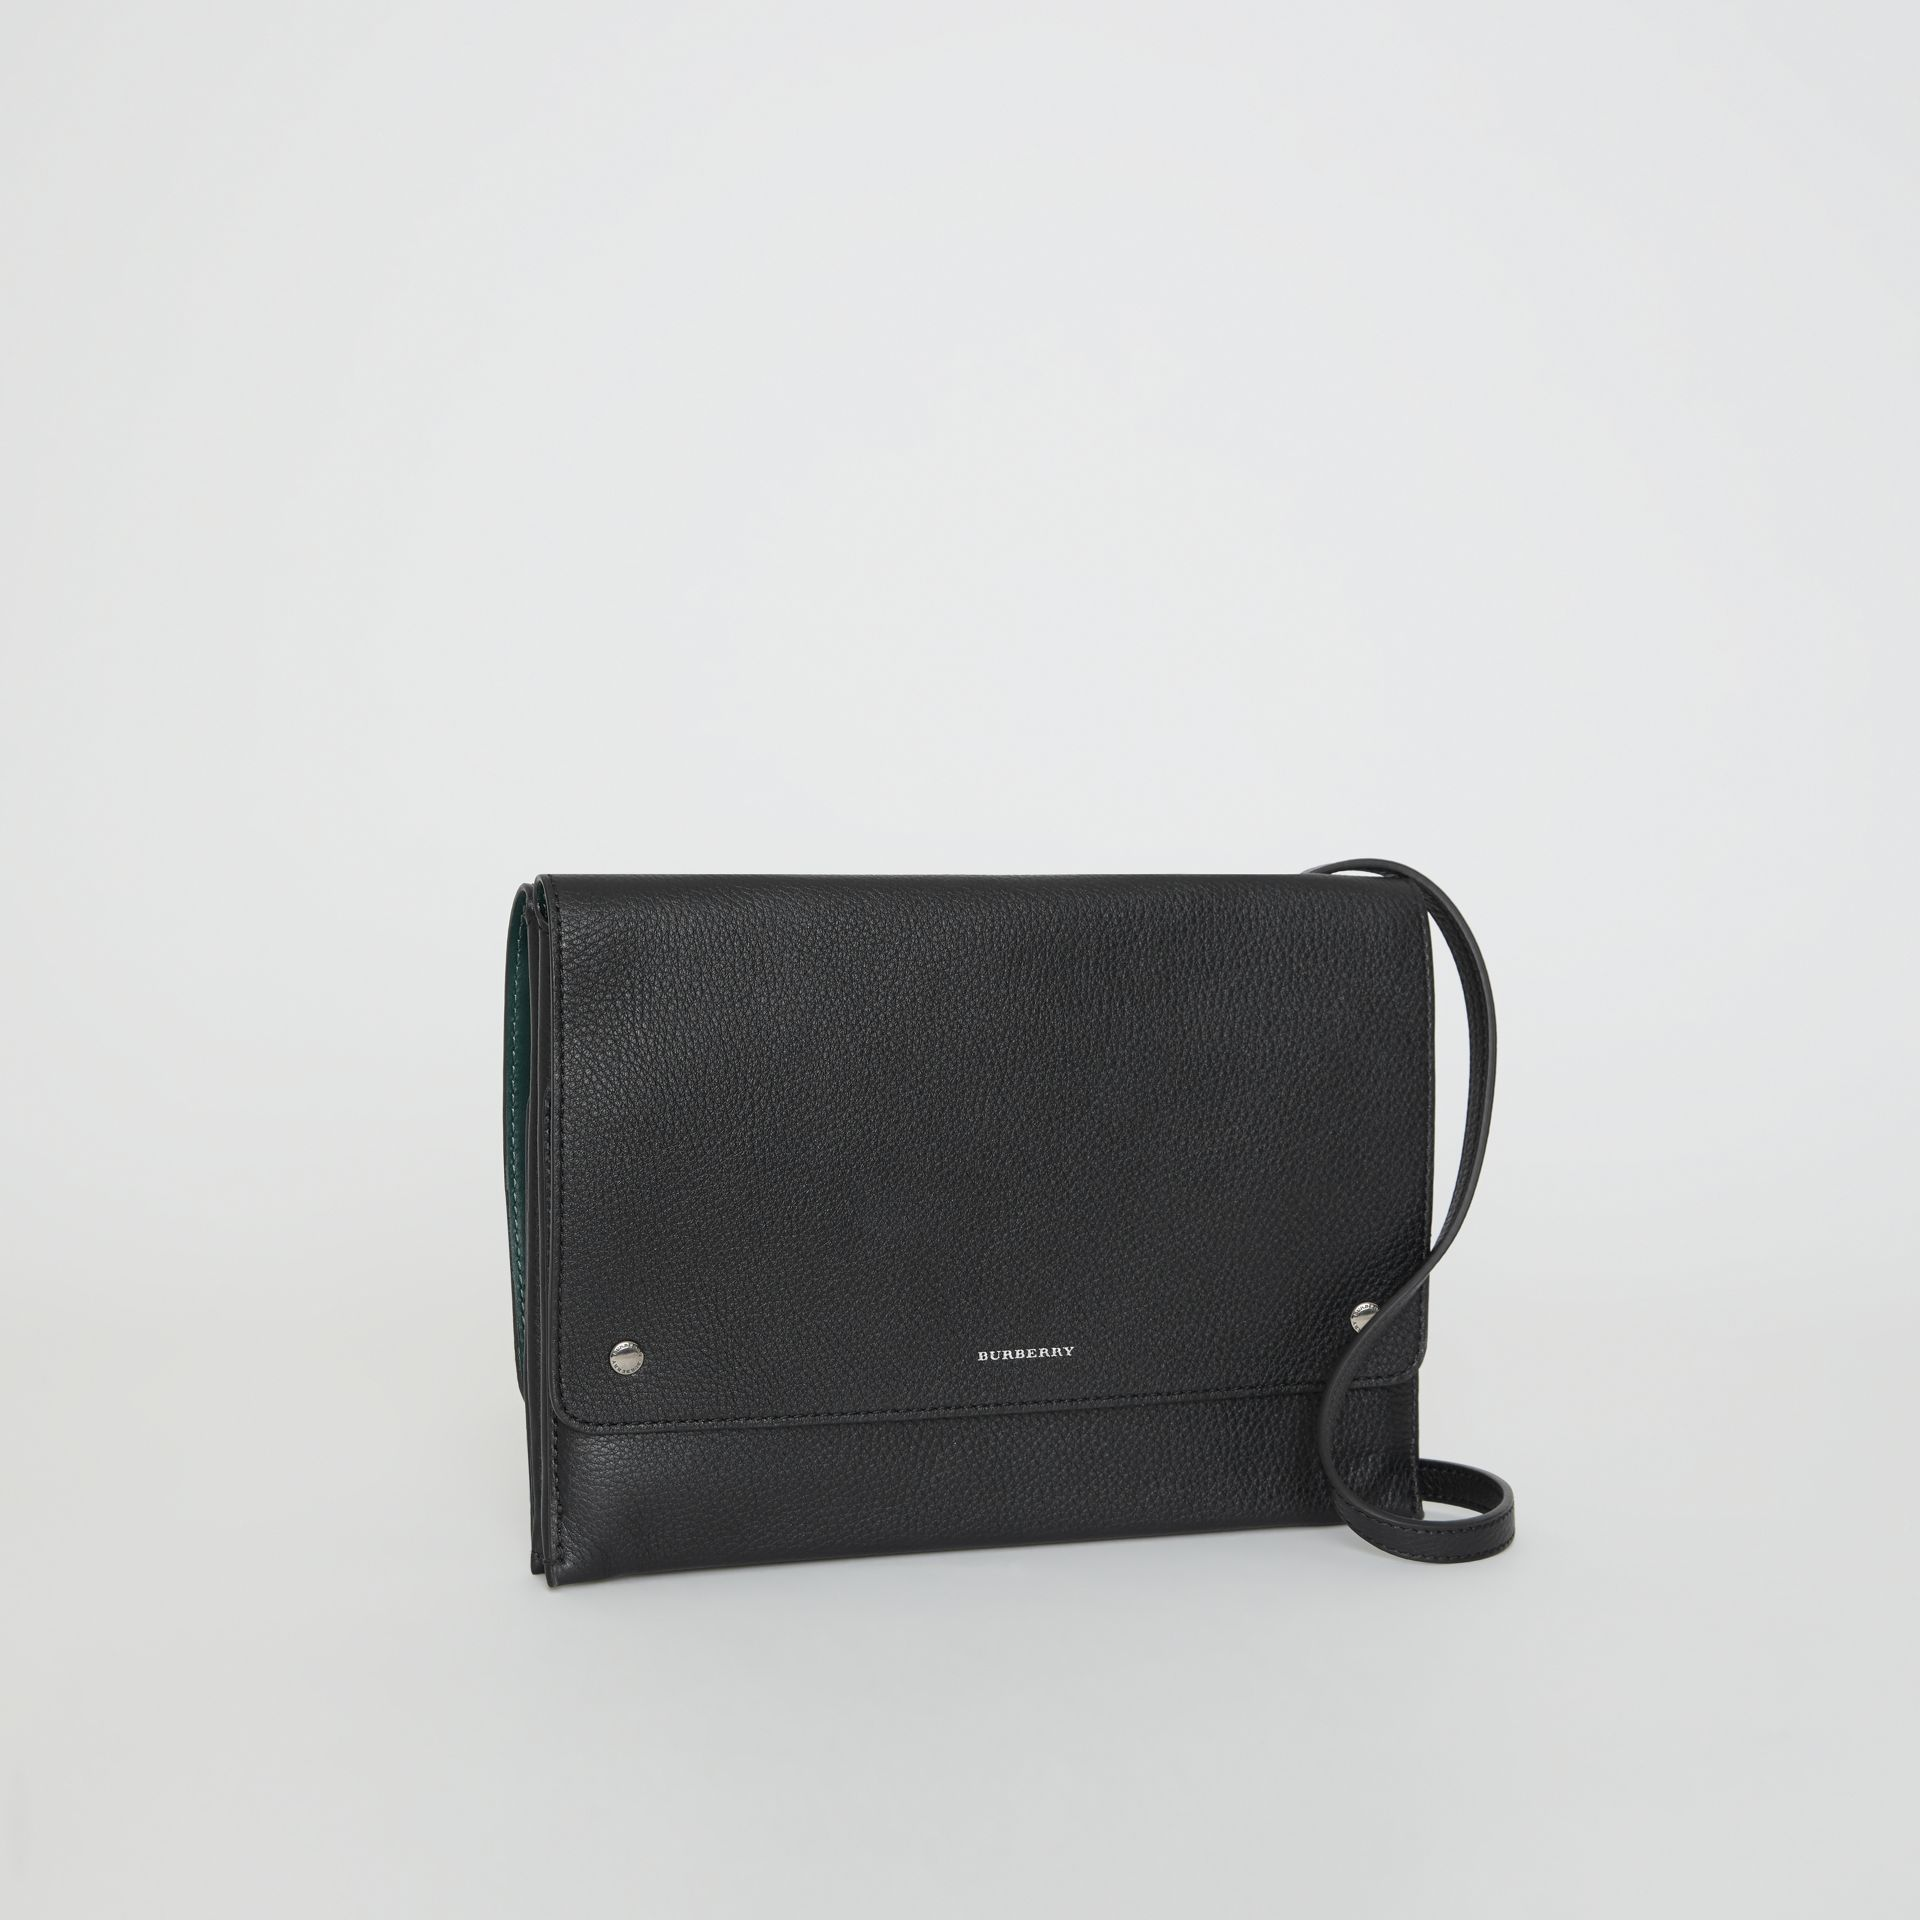 Leather Envelope Crossbody Bag in Black - Women | Burberry United States - gallery image 6